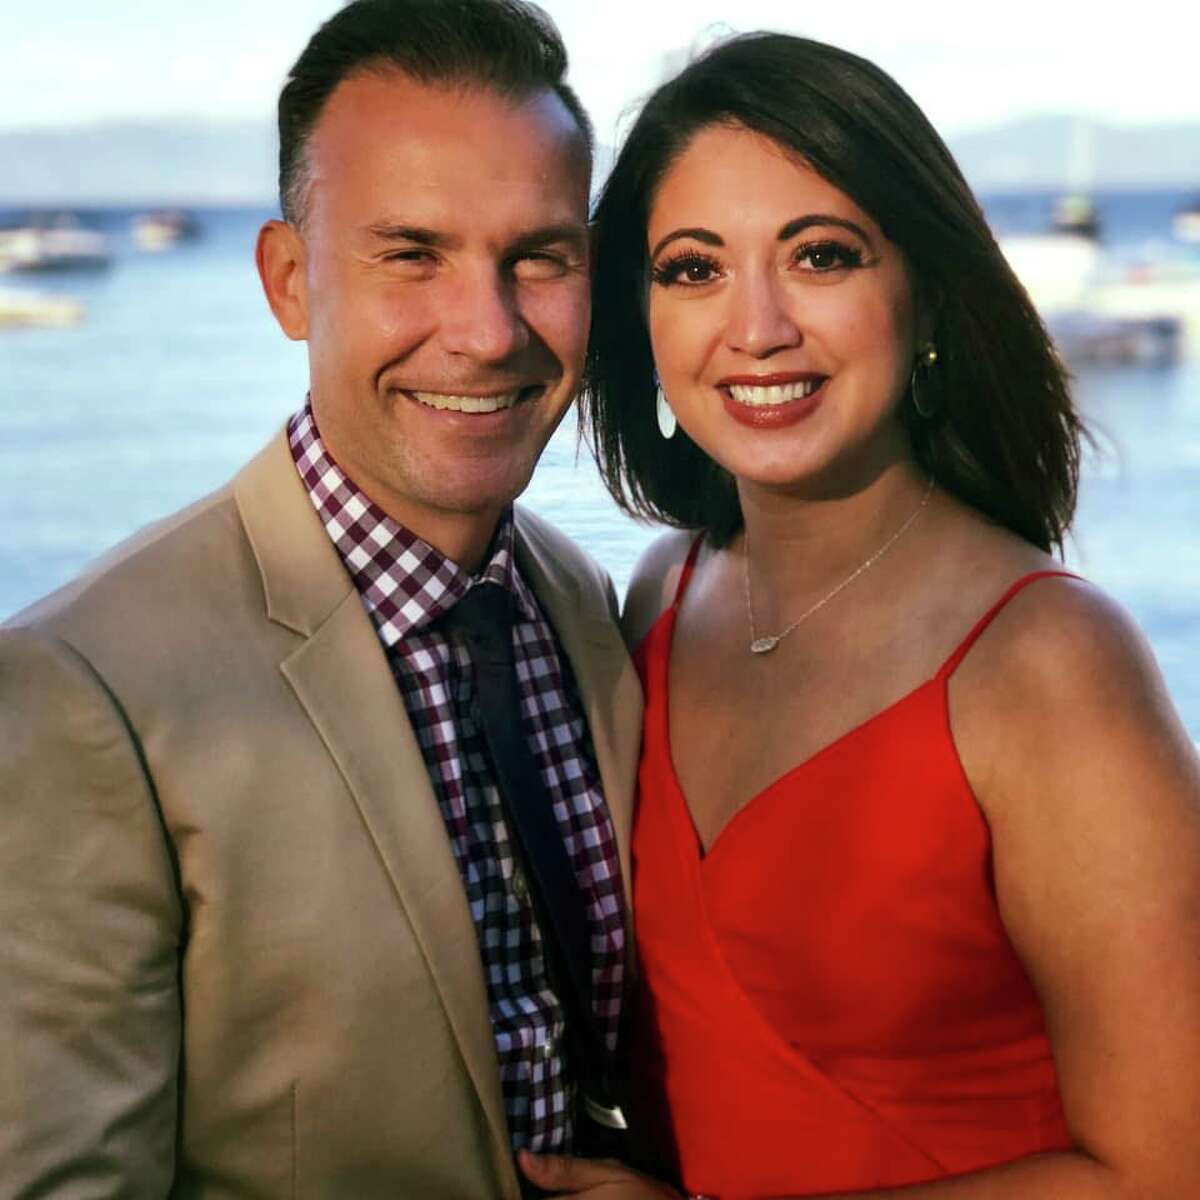 Spectrum anchors Alex Stockwell and Travis Recek announced their engagement on social media over the weekend